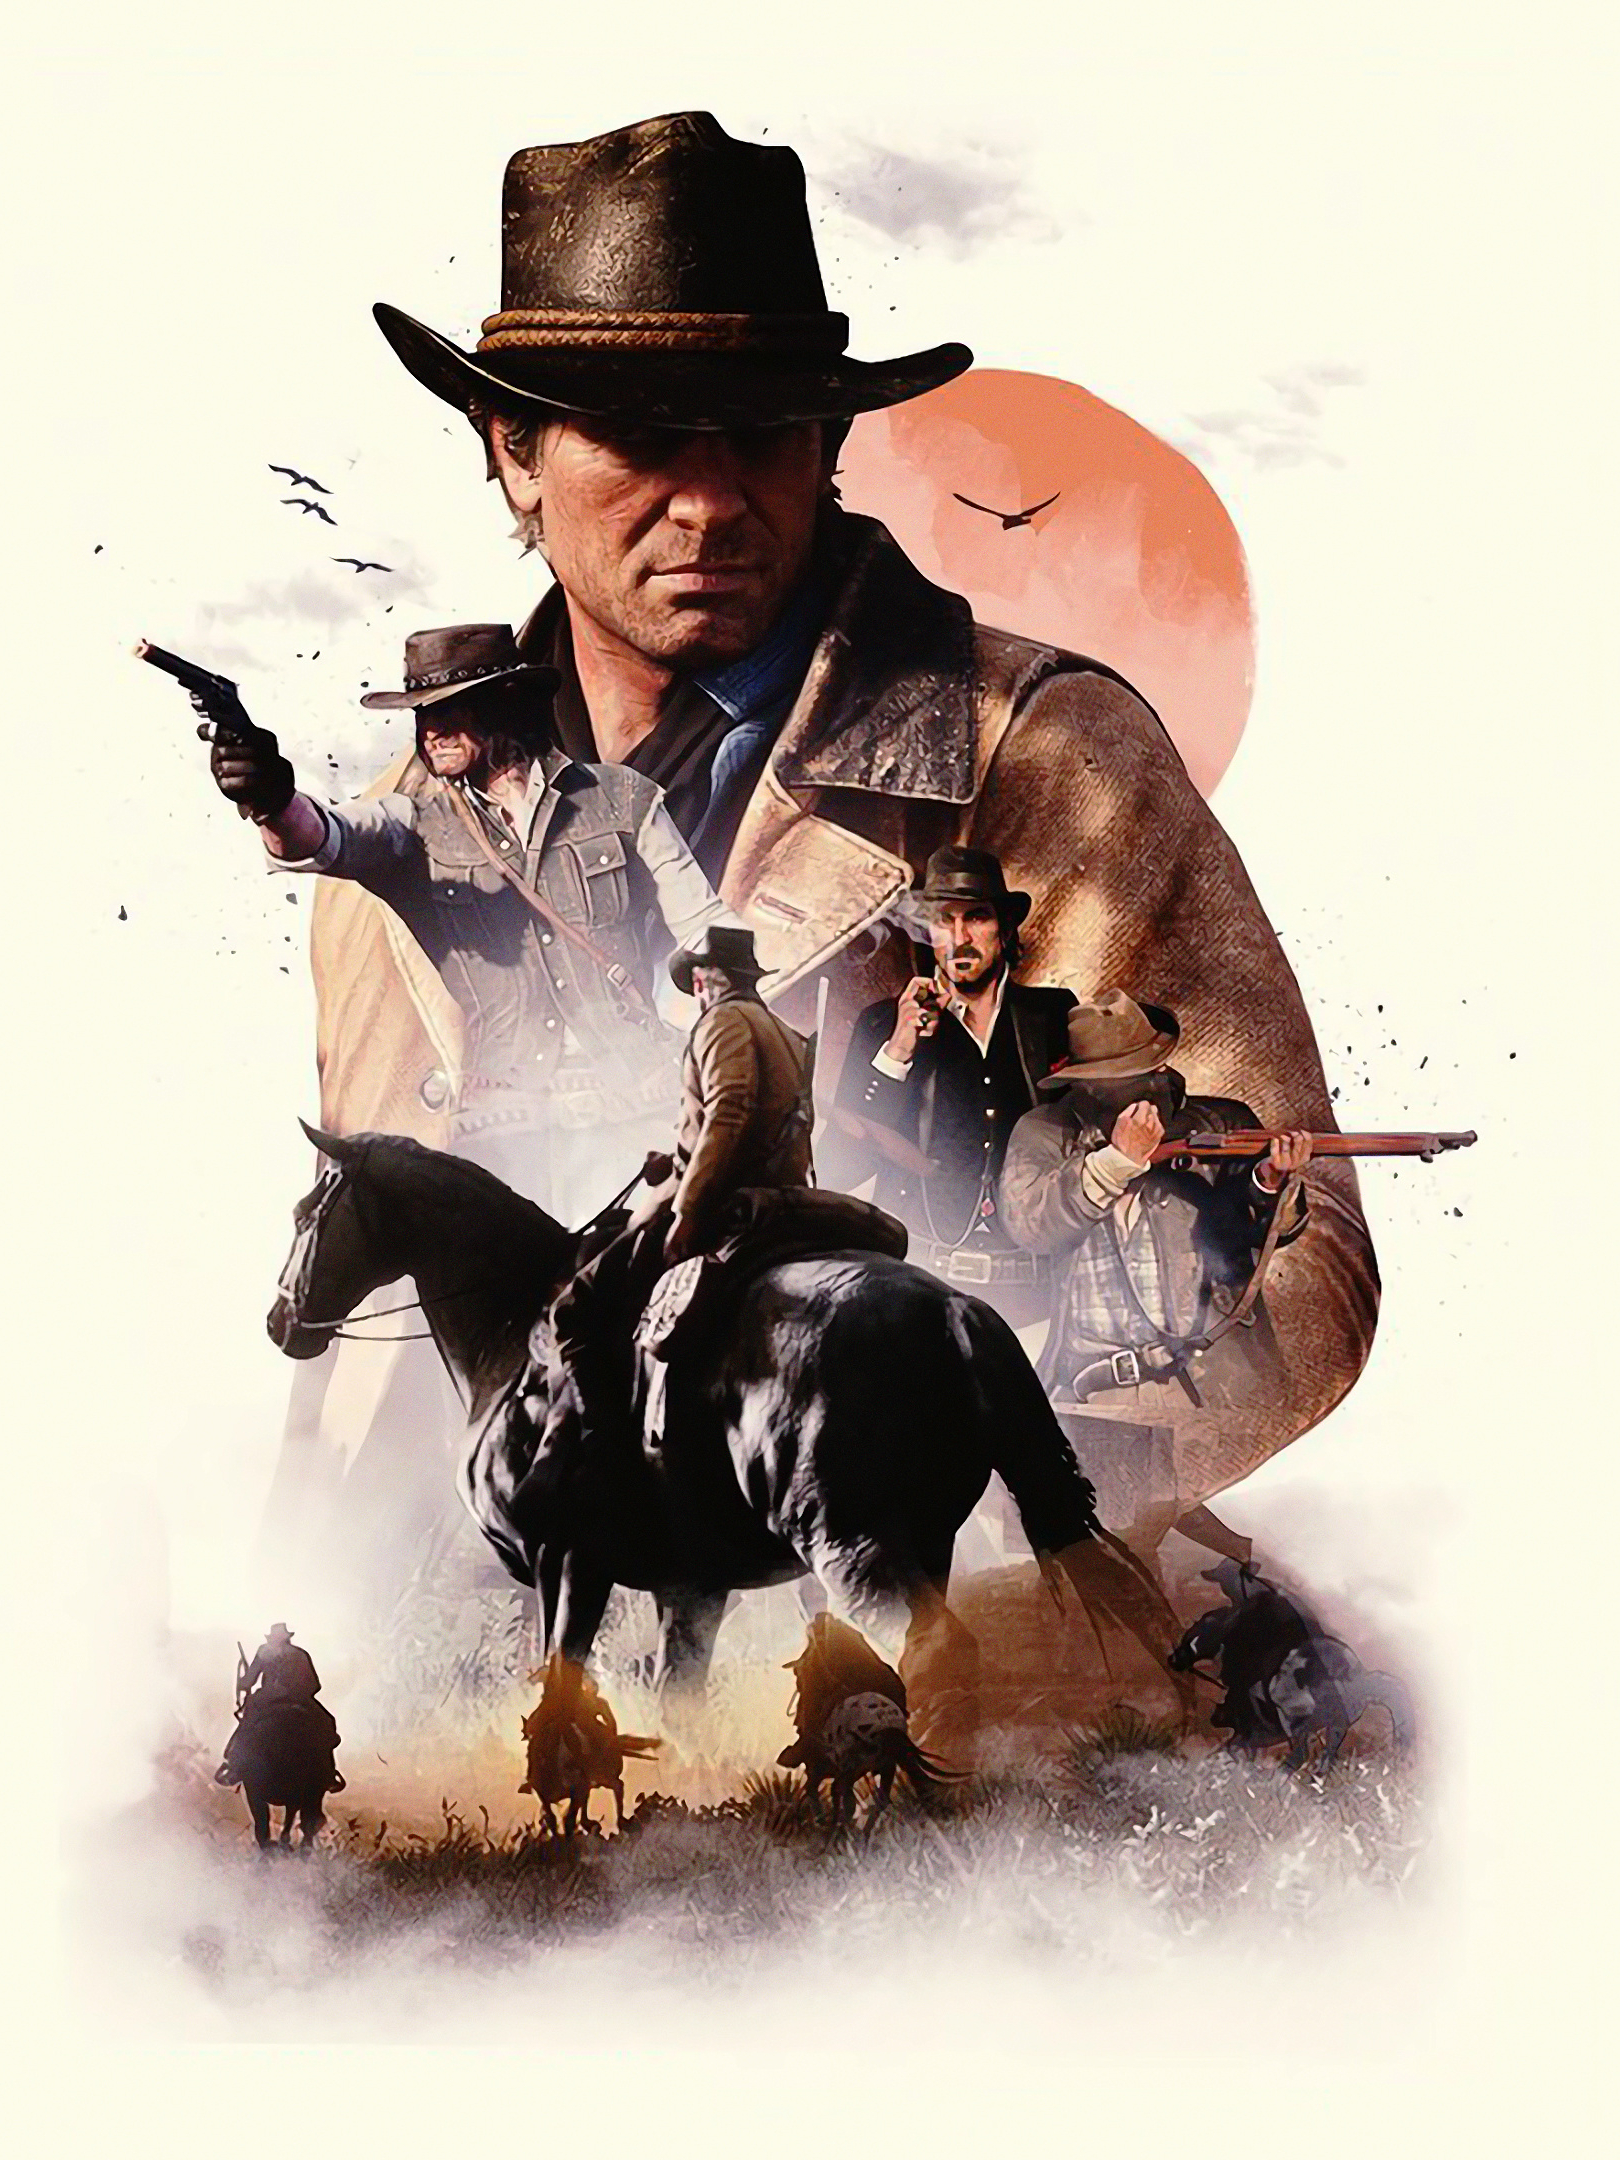 Video Game Red Dead Redemption 2 1536x2048 Wallpaper Id 765828